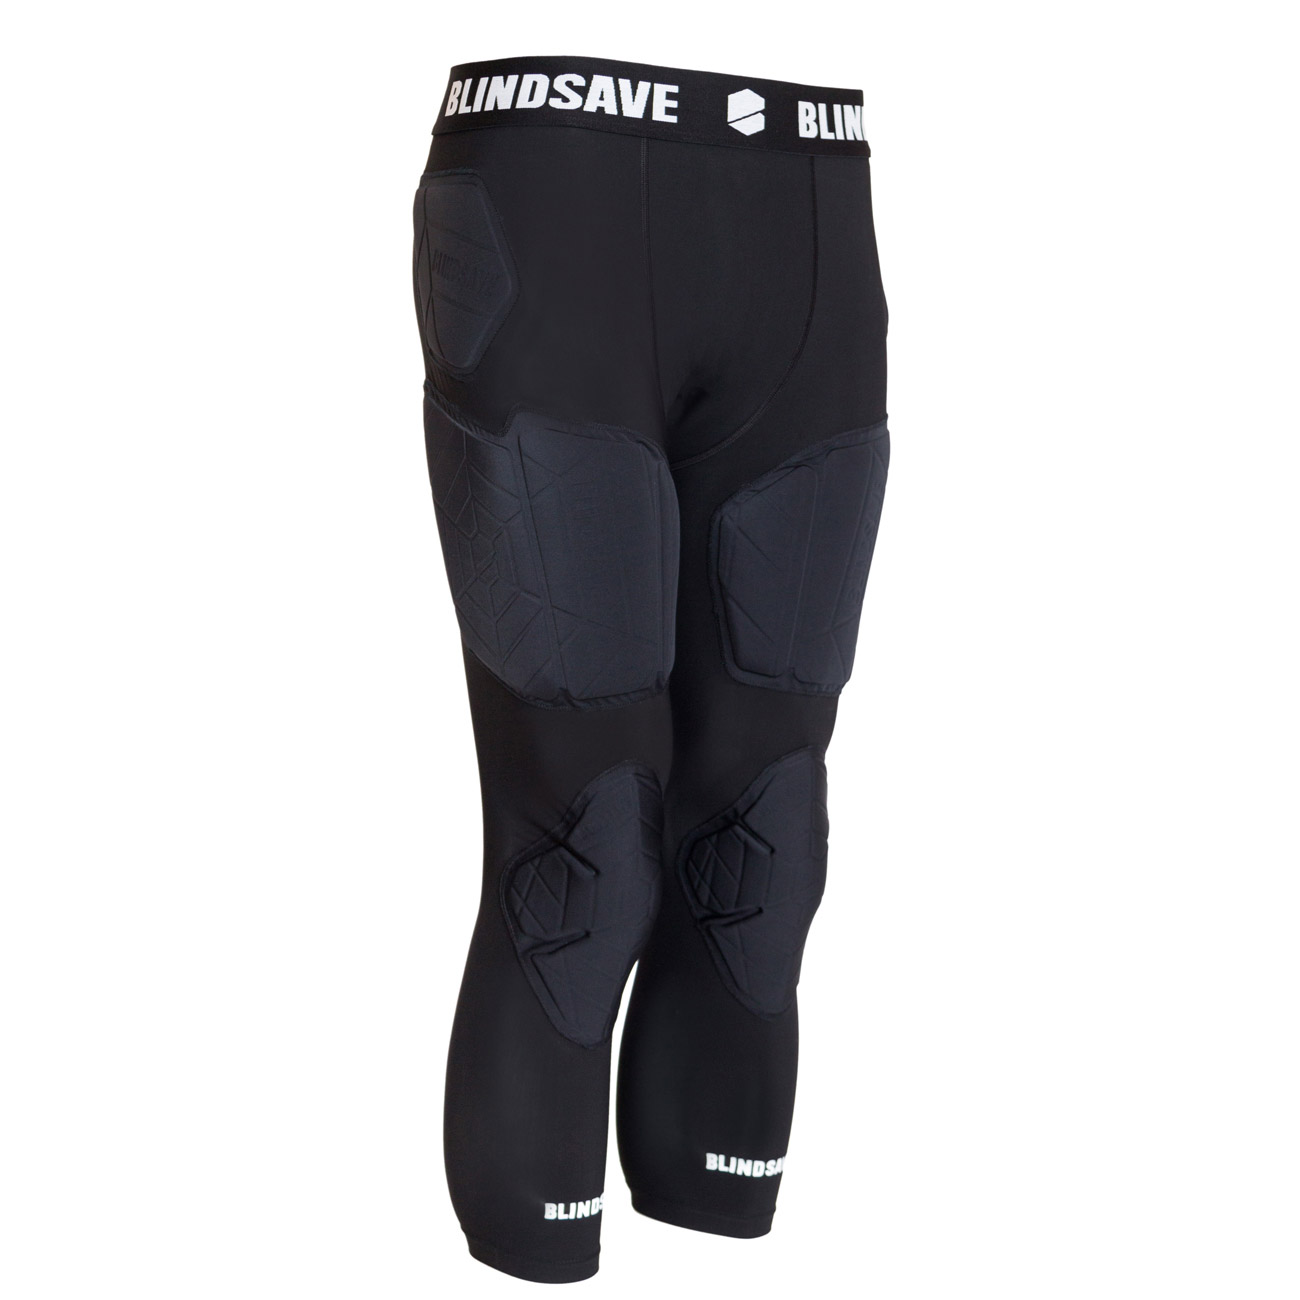 BLINDSAVE Protective 3/4 Tights FullProtection